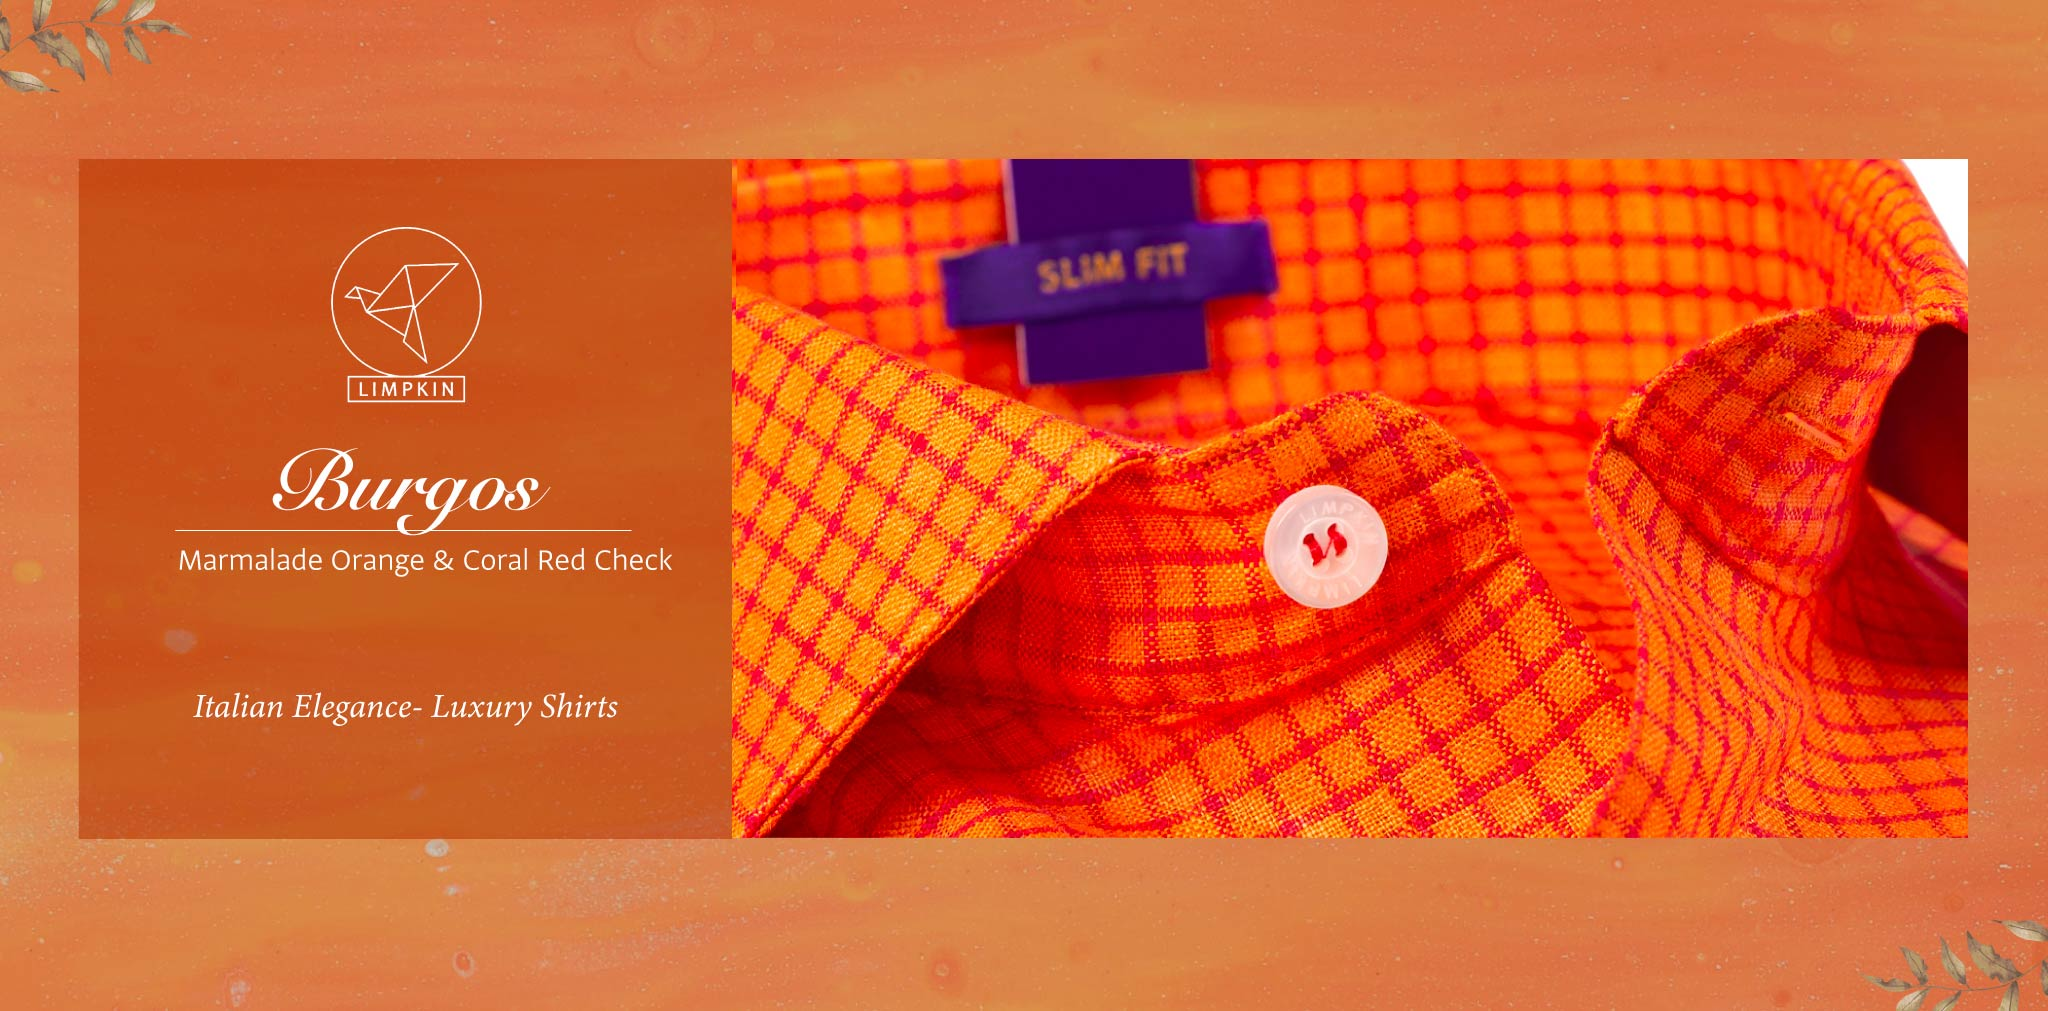 Burgos- Marmalade Orange & Coral Red Check- 66's Lea Pure Luxury Linen- Delivery from 26th Sept - Banner